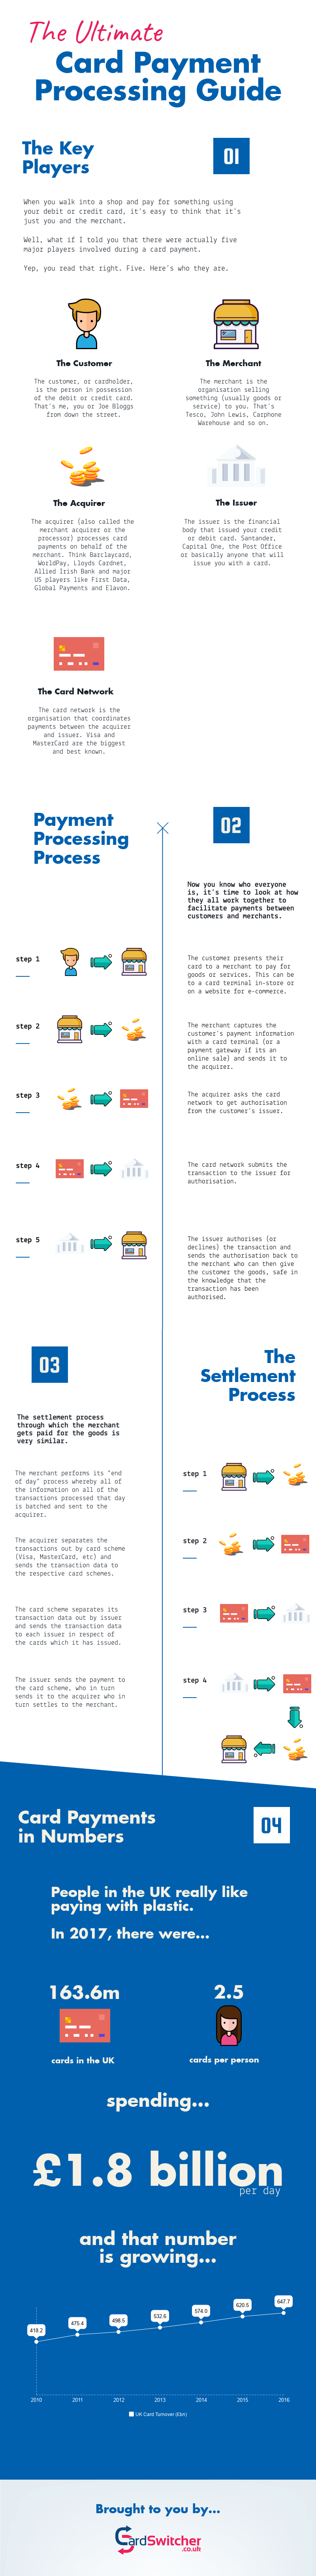 The Ultimate Card Payment Processing Infograpic